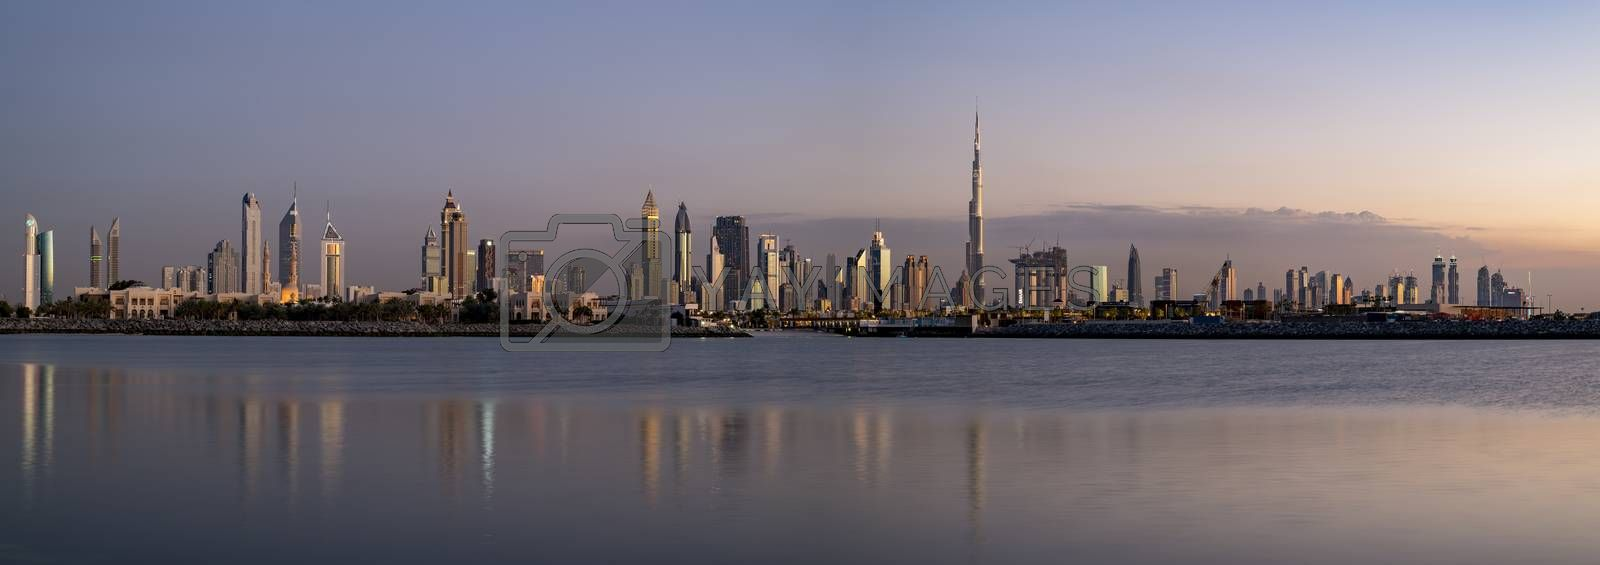 Panoramic view of Dubai Skyline at sunset with large space for text or large title, United Arab Emirates (UAE), Middle East